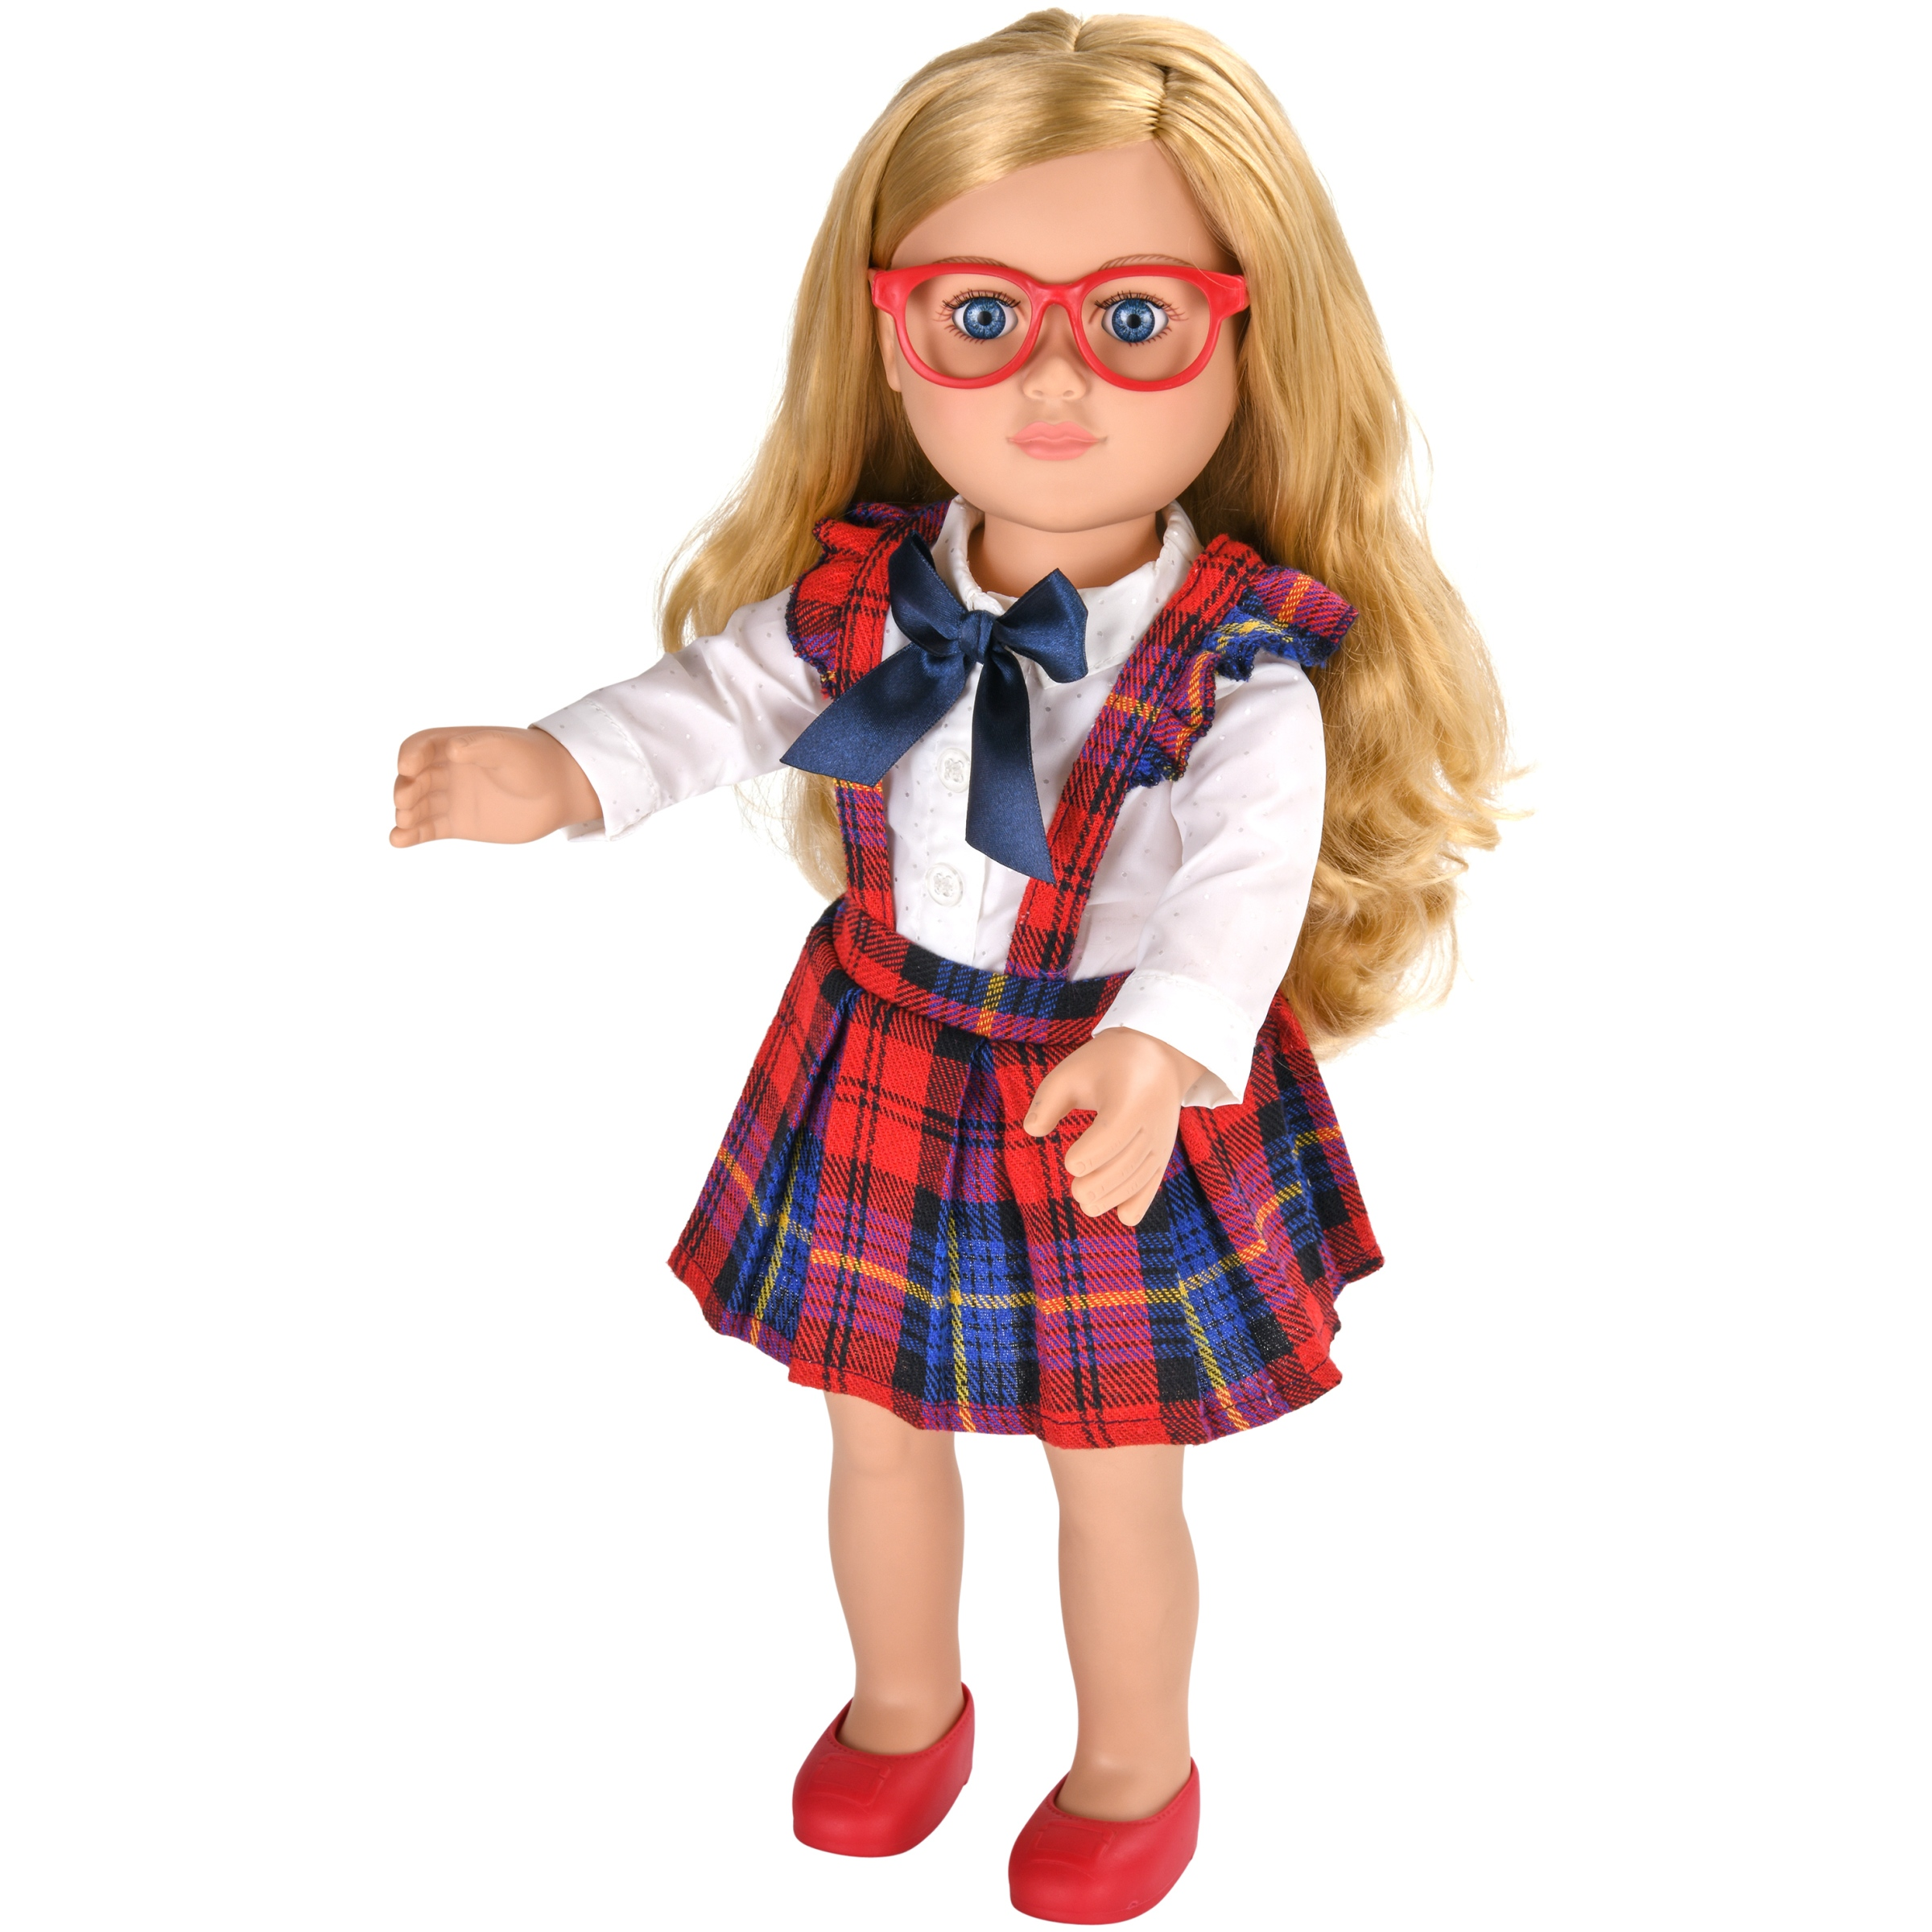 """My Life As 18"""" Poseable School Girl Doll, Blonde Hair by Hong Kong City Toys"""